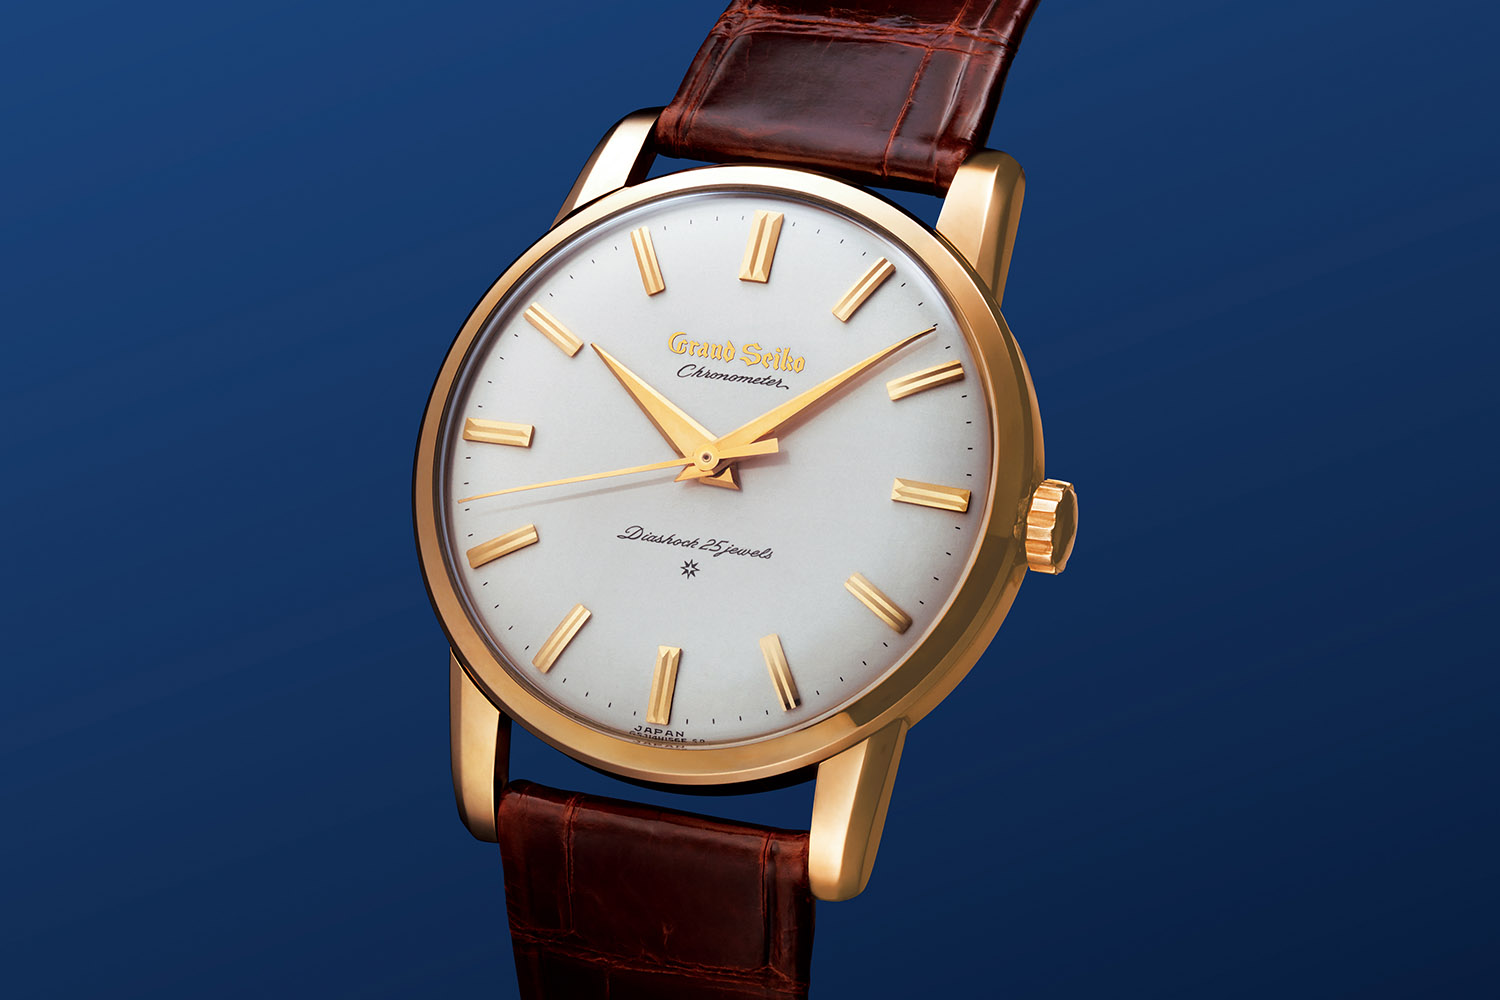 Recreating The First Grand Seiko (SBGW251 - SBGW252 - SBGW253) Plus A Modern Reissue (SBGR305)